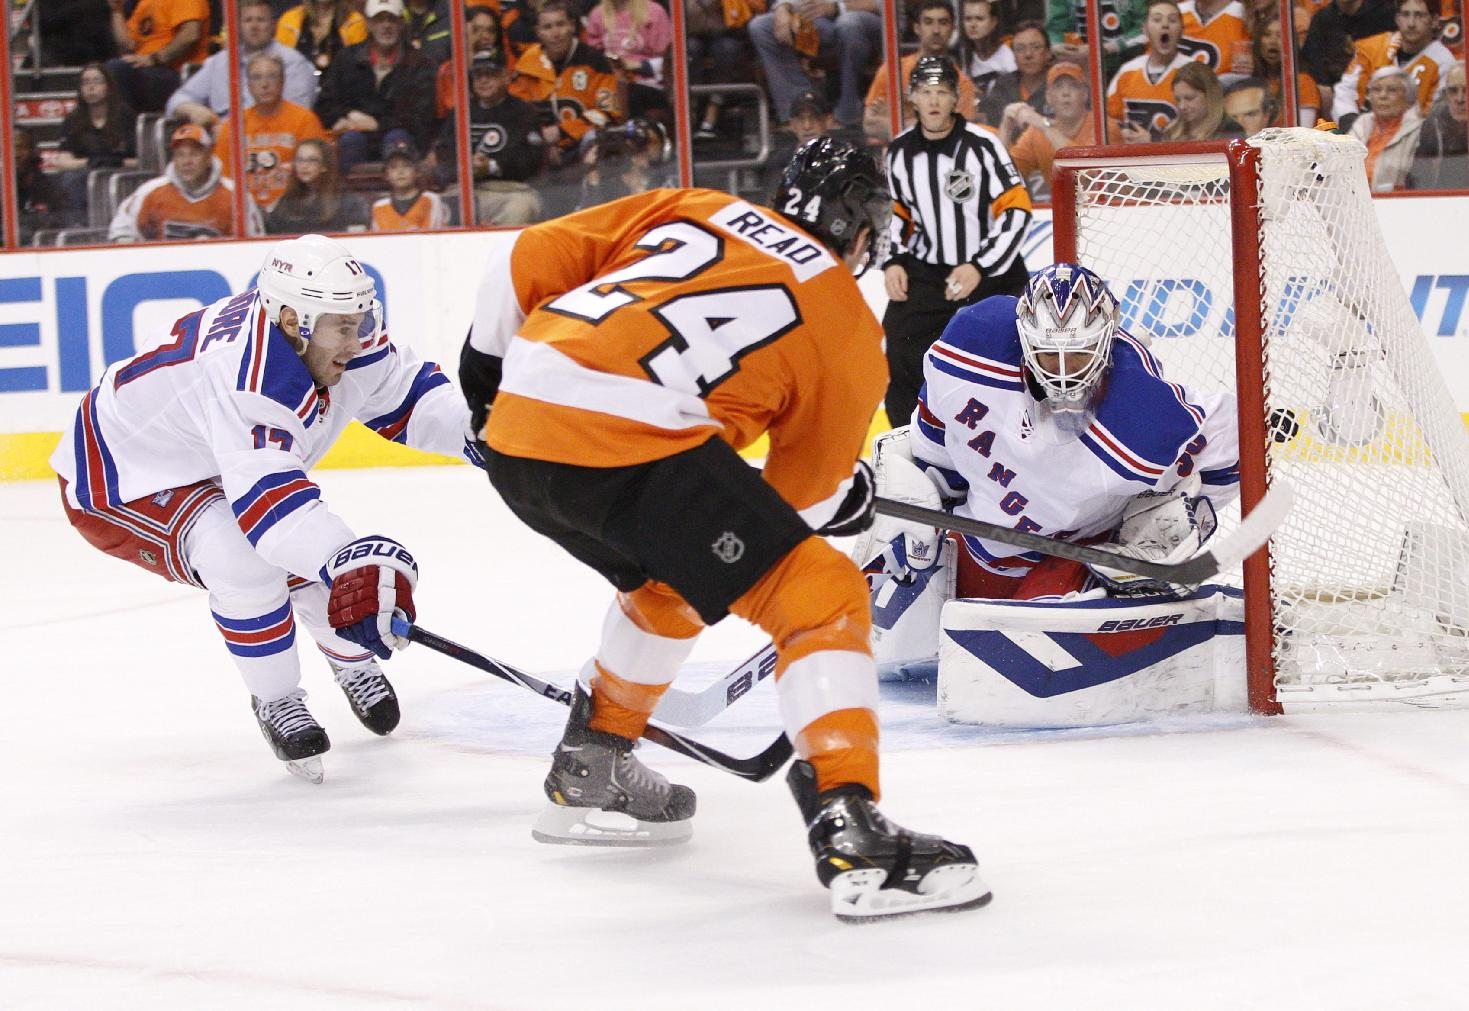 Philadelphia Flyers' Matt Read, center, shoots the puck past New York Rangers' Henrik Lundqvist, right, of Sweden, for a goal as John Moore tries to defend during the first period in Game 4 of an NHL hockey first-round playoff series on Friday, April 25, 2014, in Philadelphia